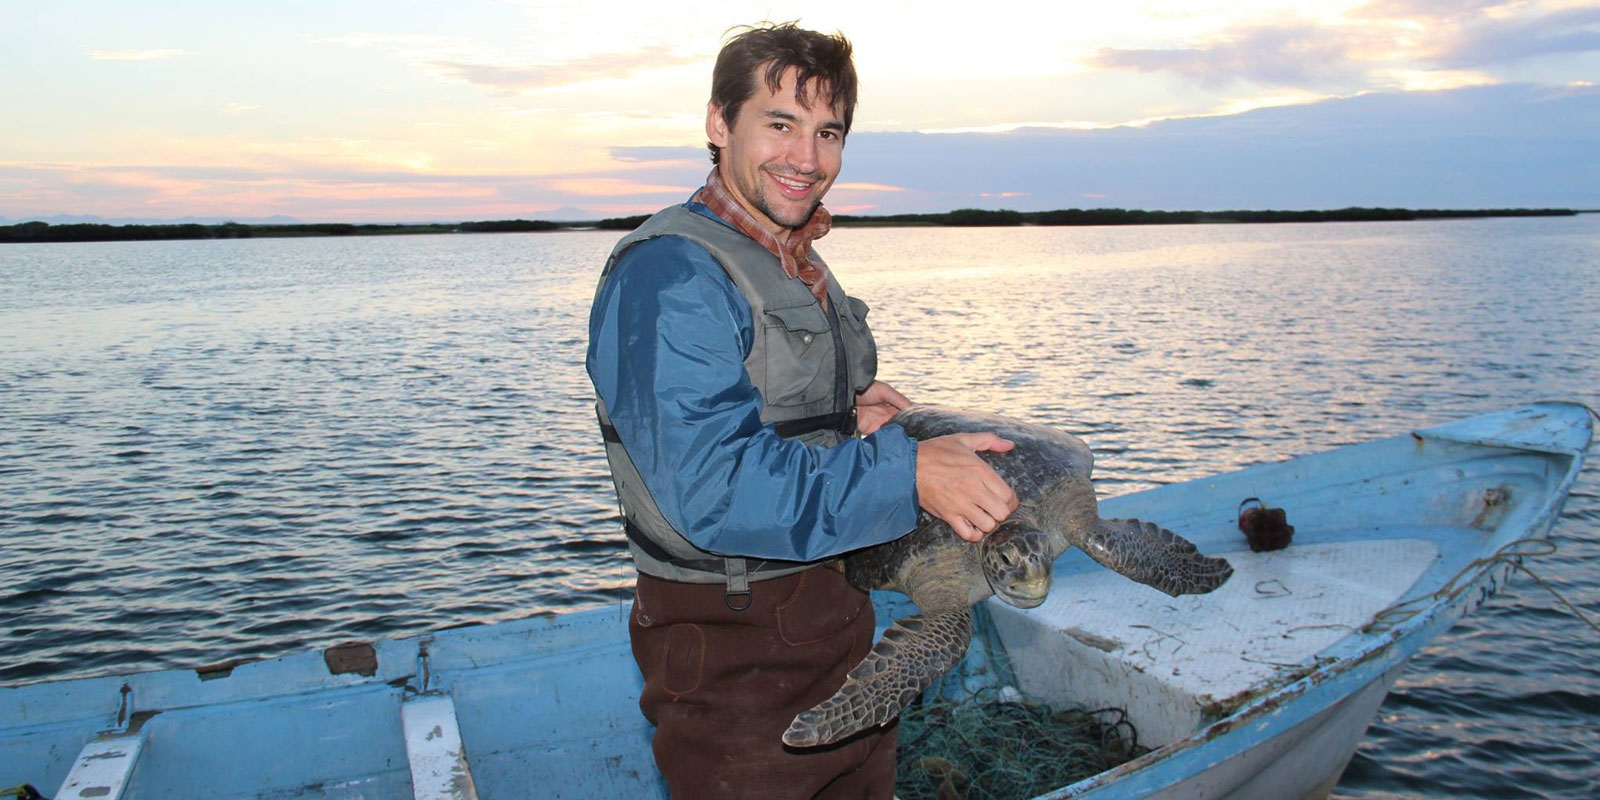 Travis Kemnitz holding a sea turtle on a small fishing boat